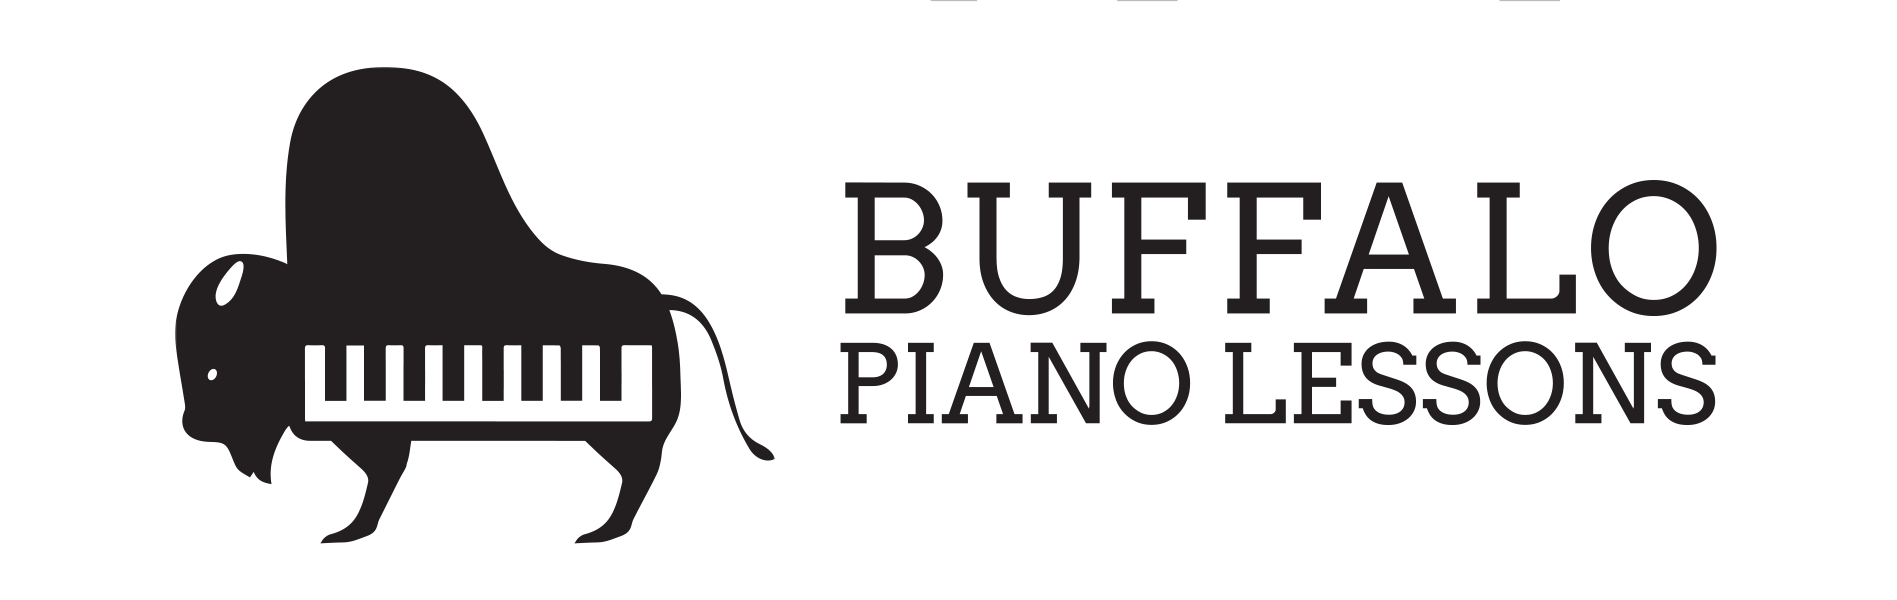 Buffalo Piano Lessons